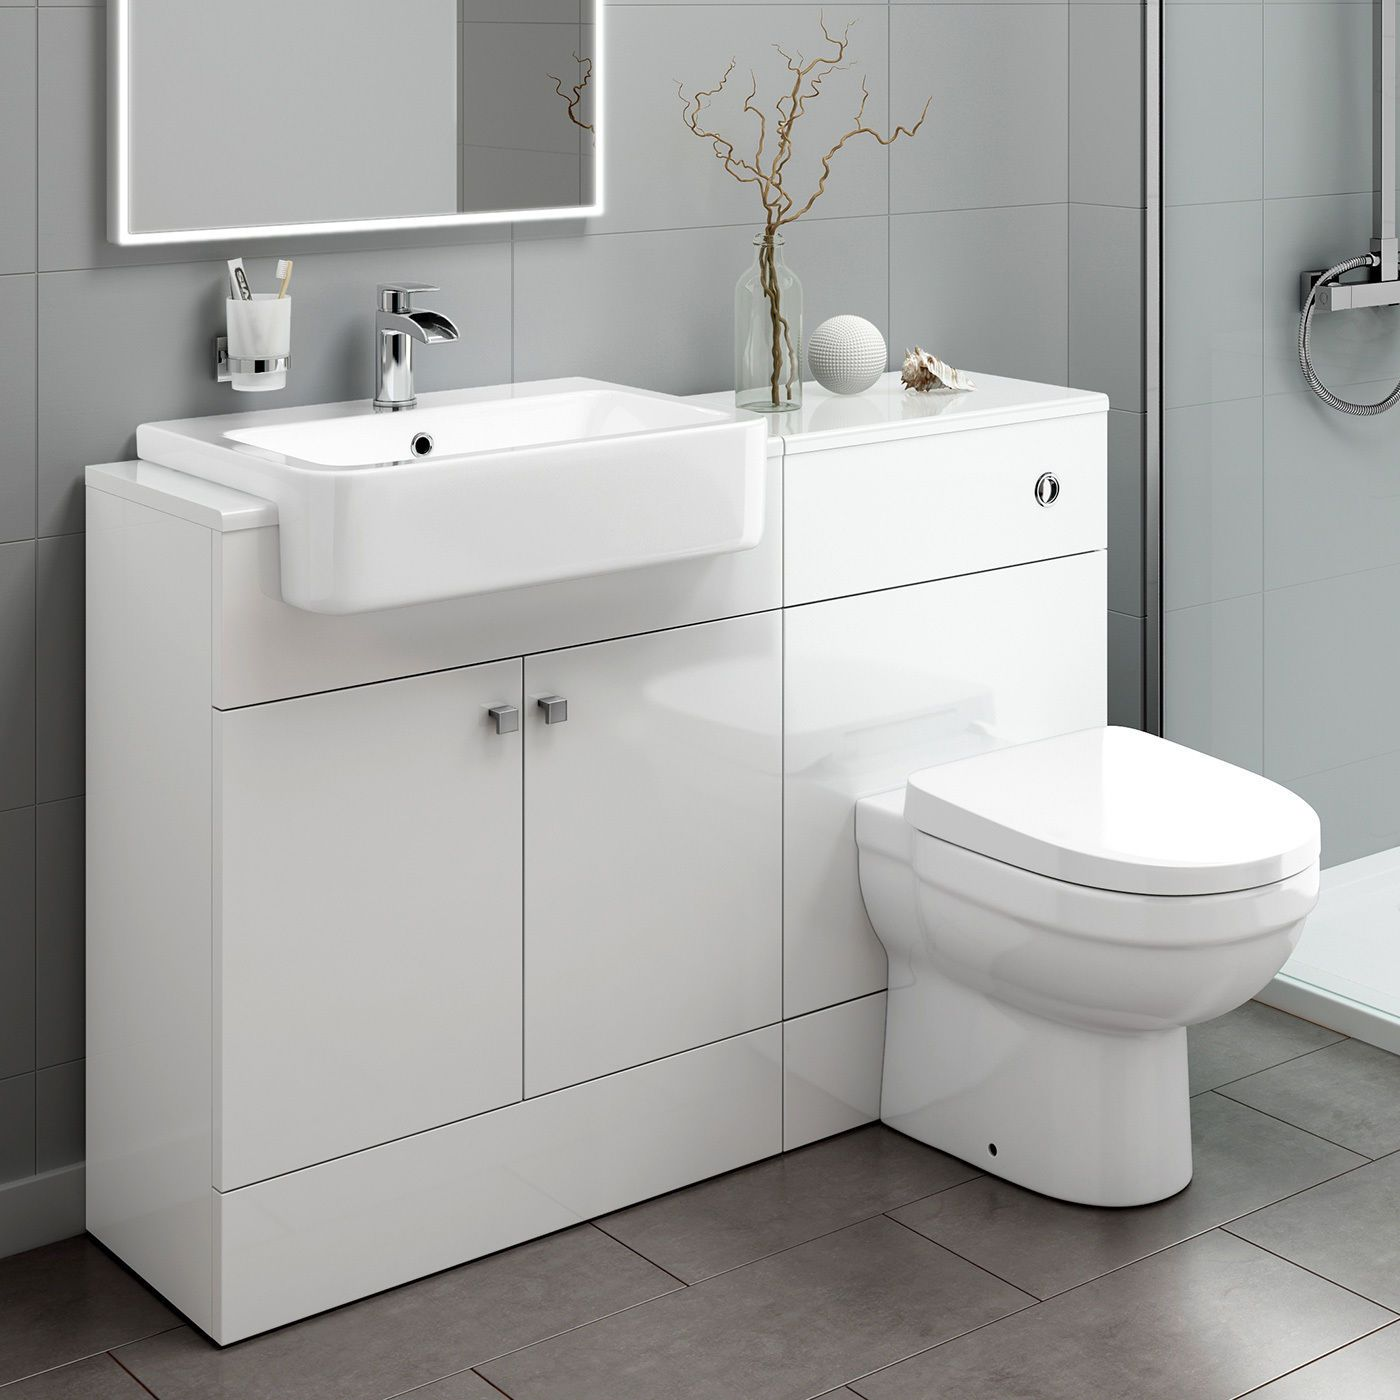 This Toilet And Sink Vanity Storage Unit Features A Built In Toilet And  White Ceramic Bathroom Sink, Making It The Suitable For Any Contemporary  Bathroom ...